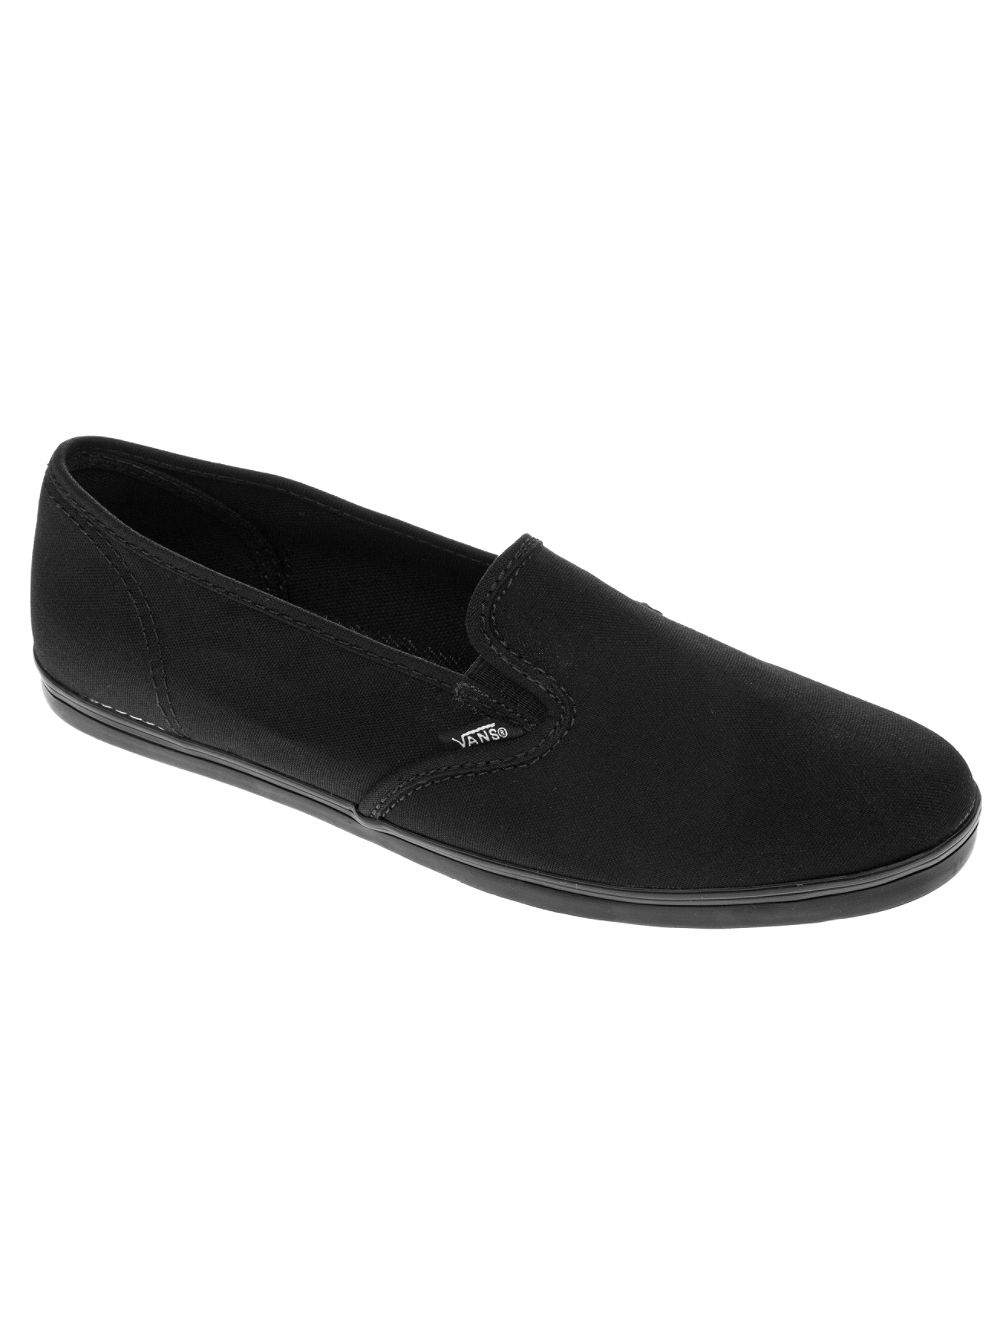 Slip-On Lo Pro Women